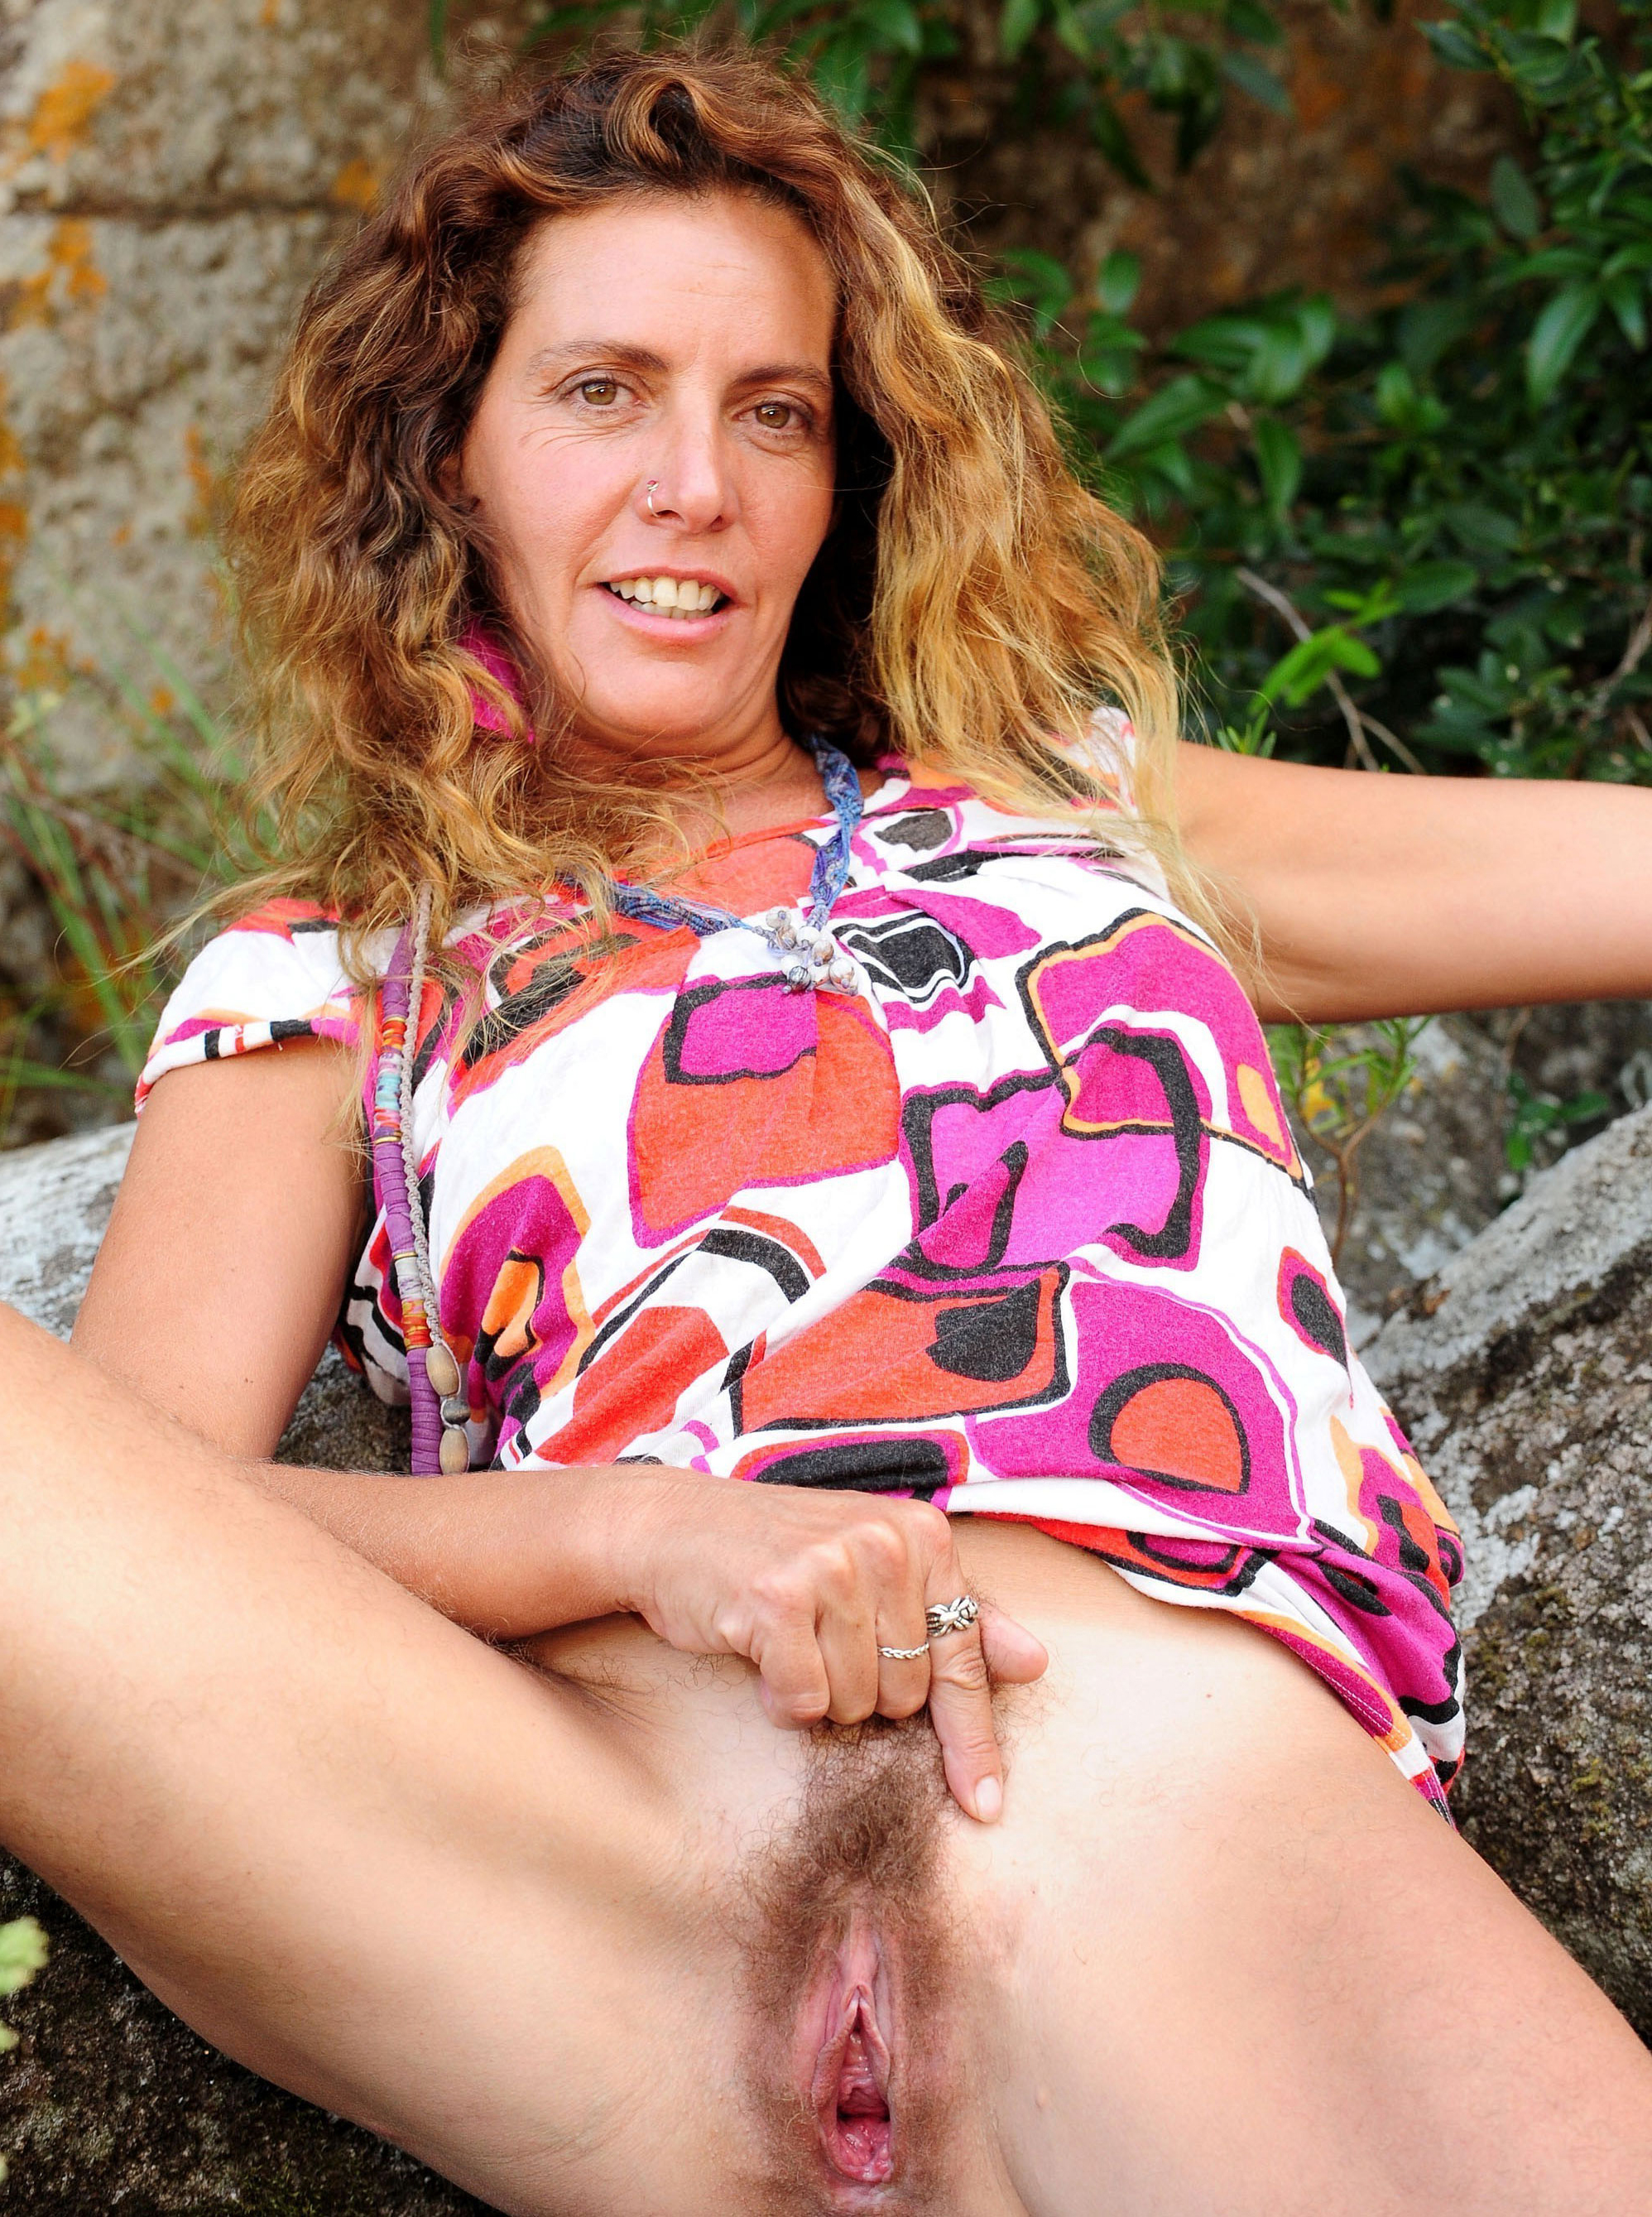 Natural Pussy Porn - Porn pics of natural mature pussy - MatureHomemadePorn.com